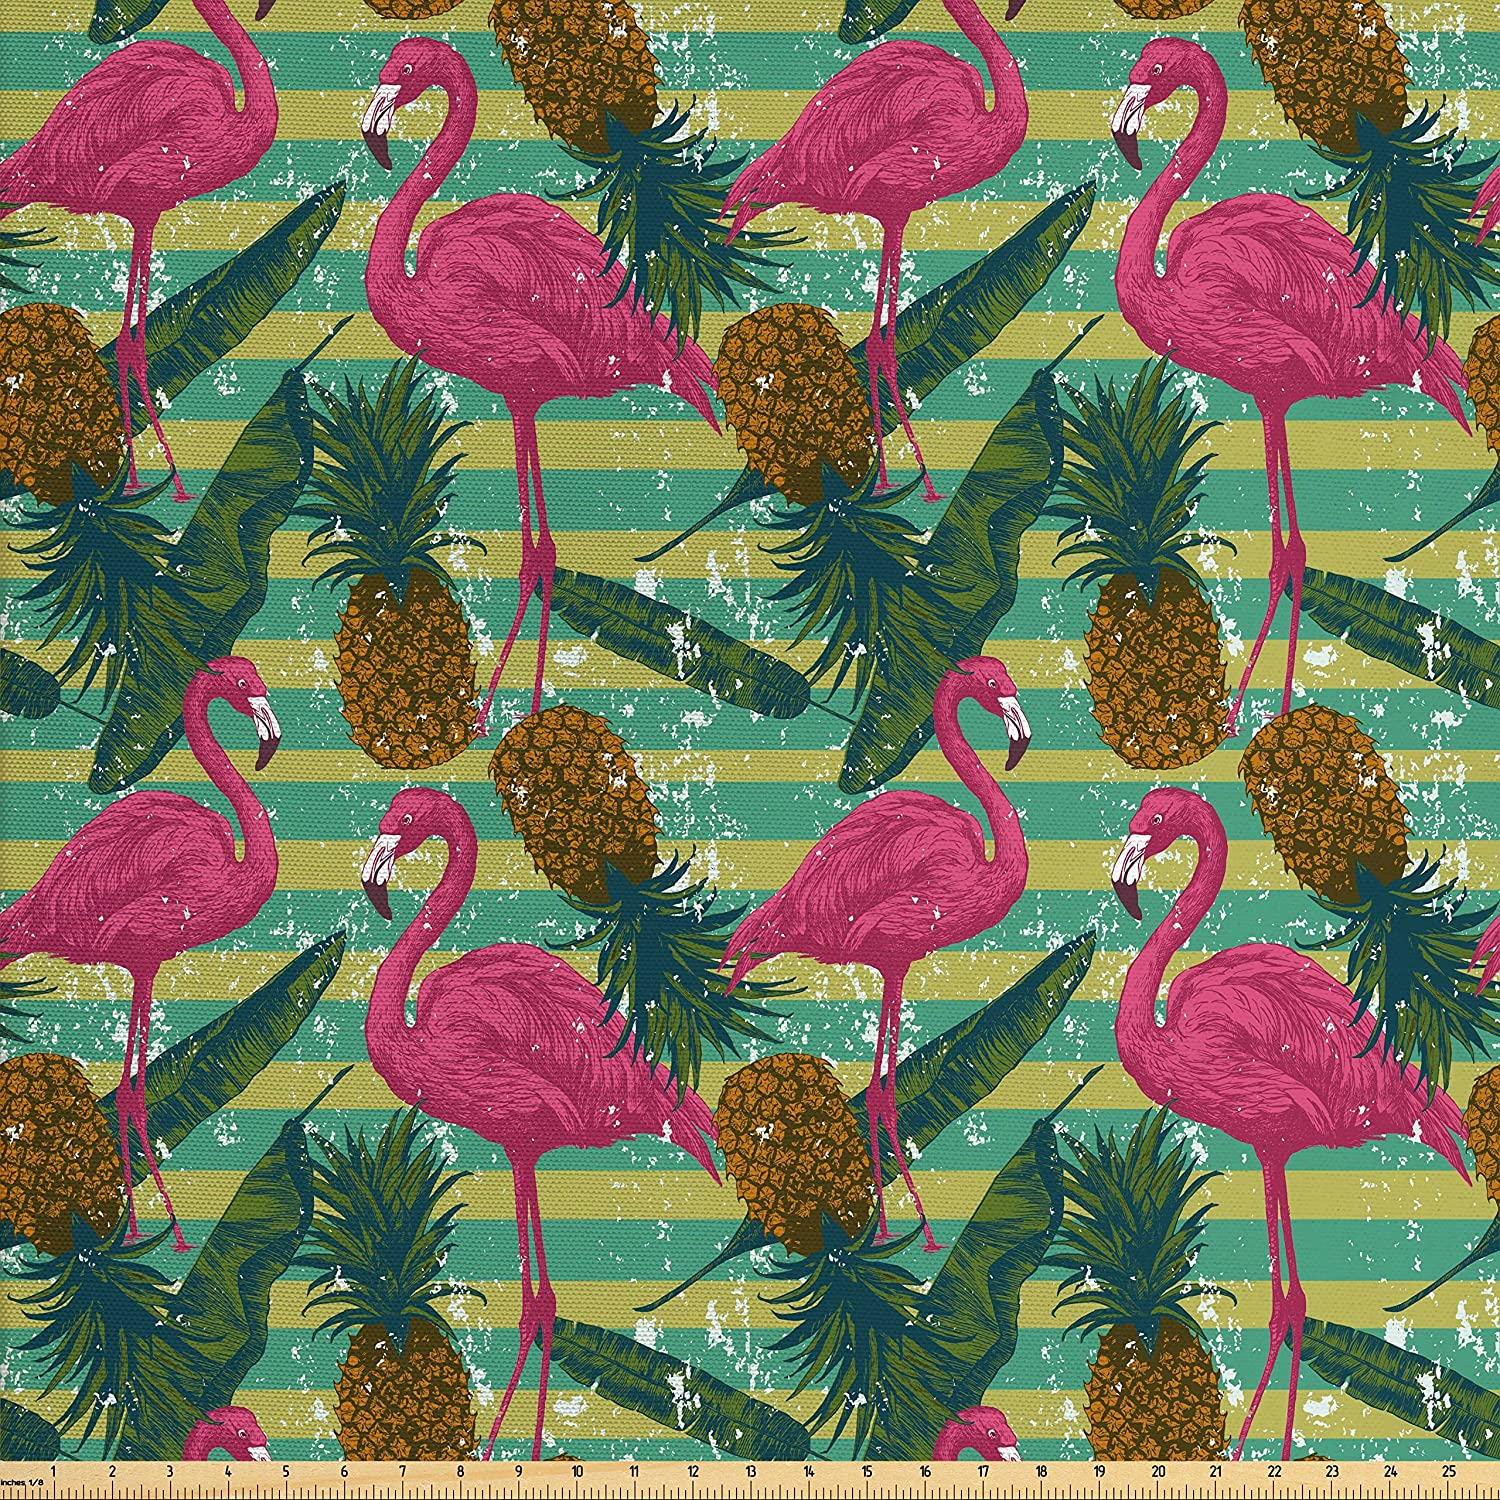 Ambesonne Flamingo Fabric by The Yard, Tropical Animals on Striped Background with Pineapples Banana Leaves Grunge Look, Decorative Fabric for Upholstery and Home Accents, Multicolor